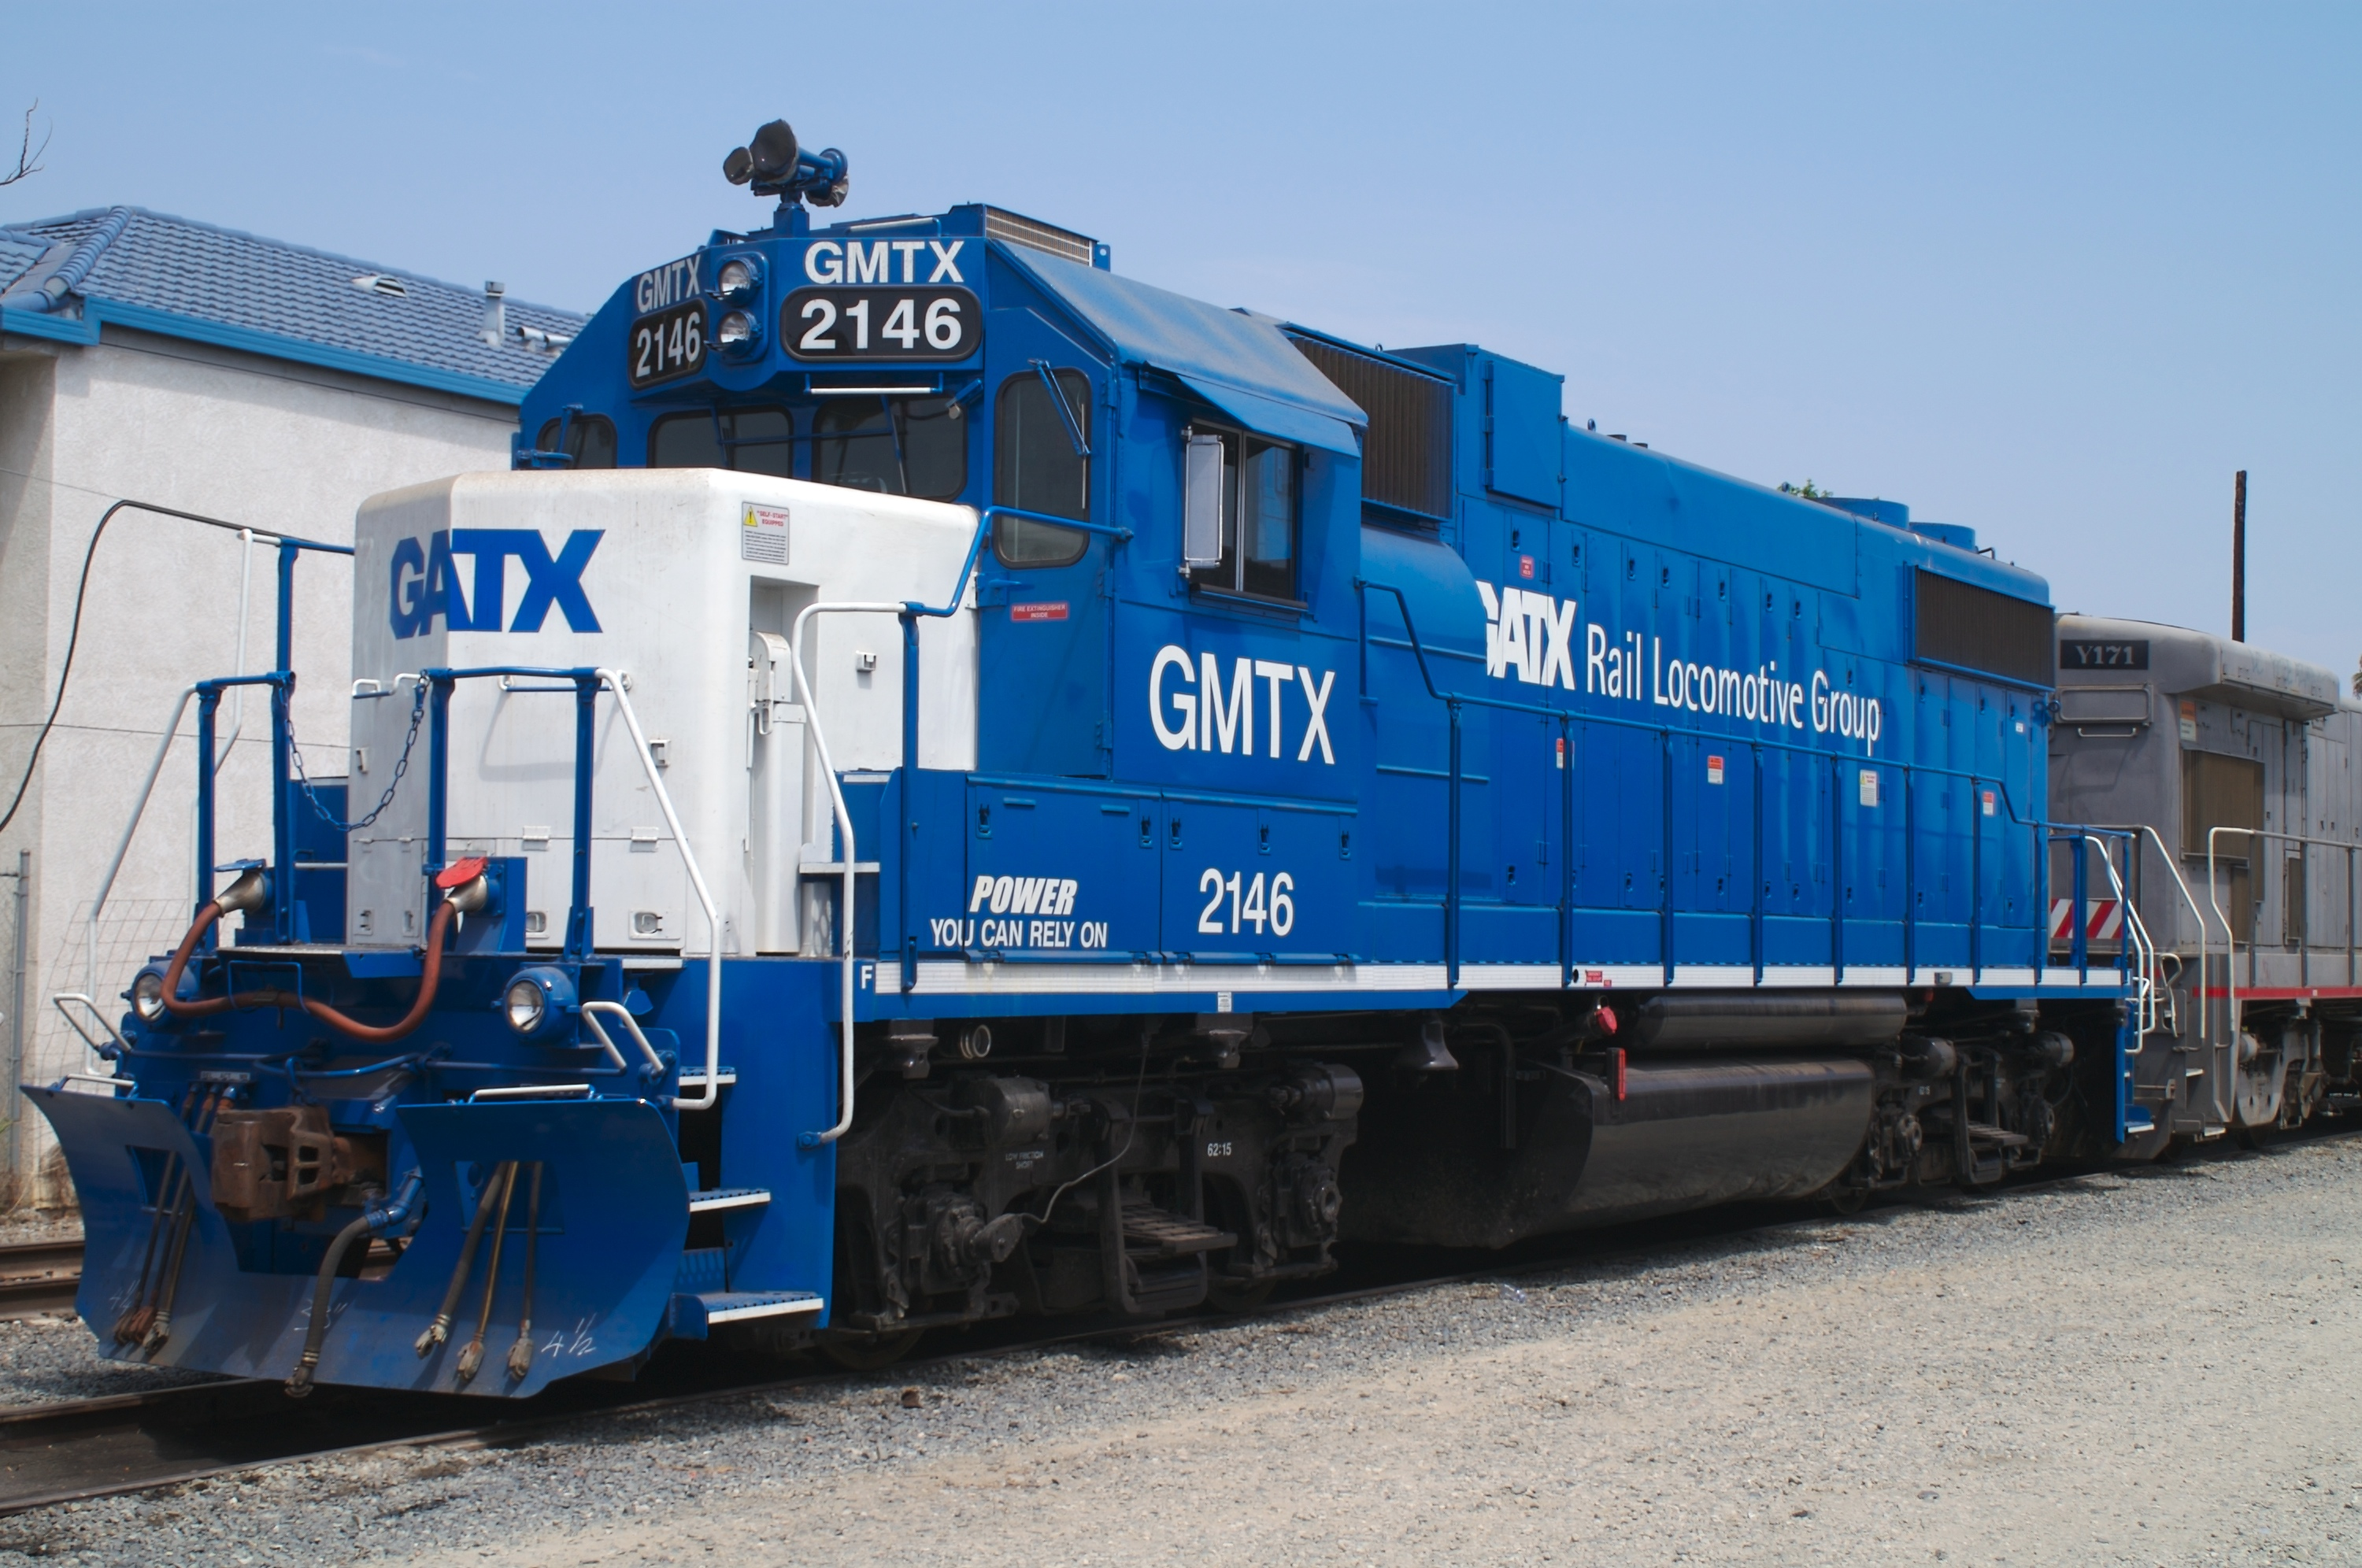 http://upload.wikimedia.org/wikipedia/commons/4/41/EMD_GP38-2_GMTX_2146.jpg